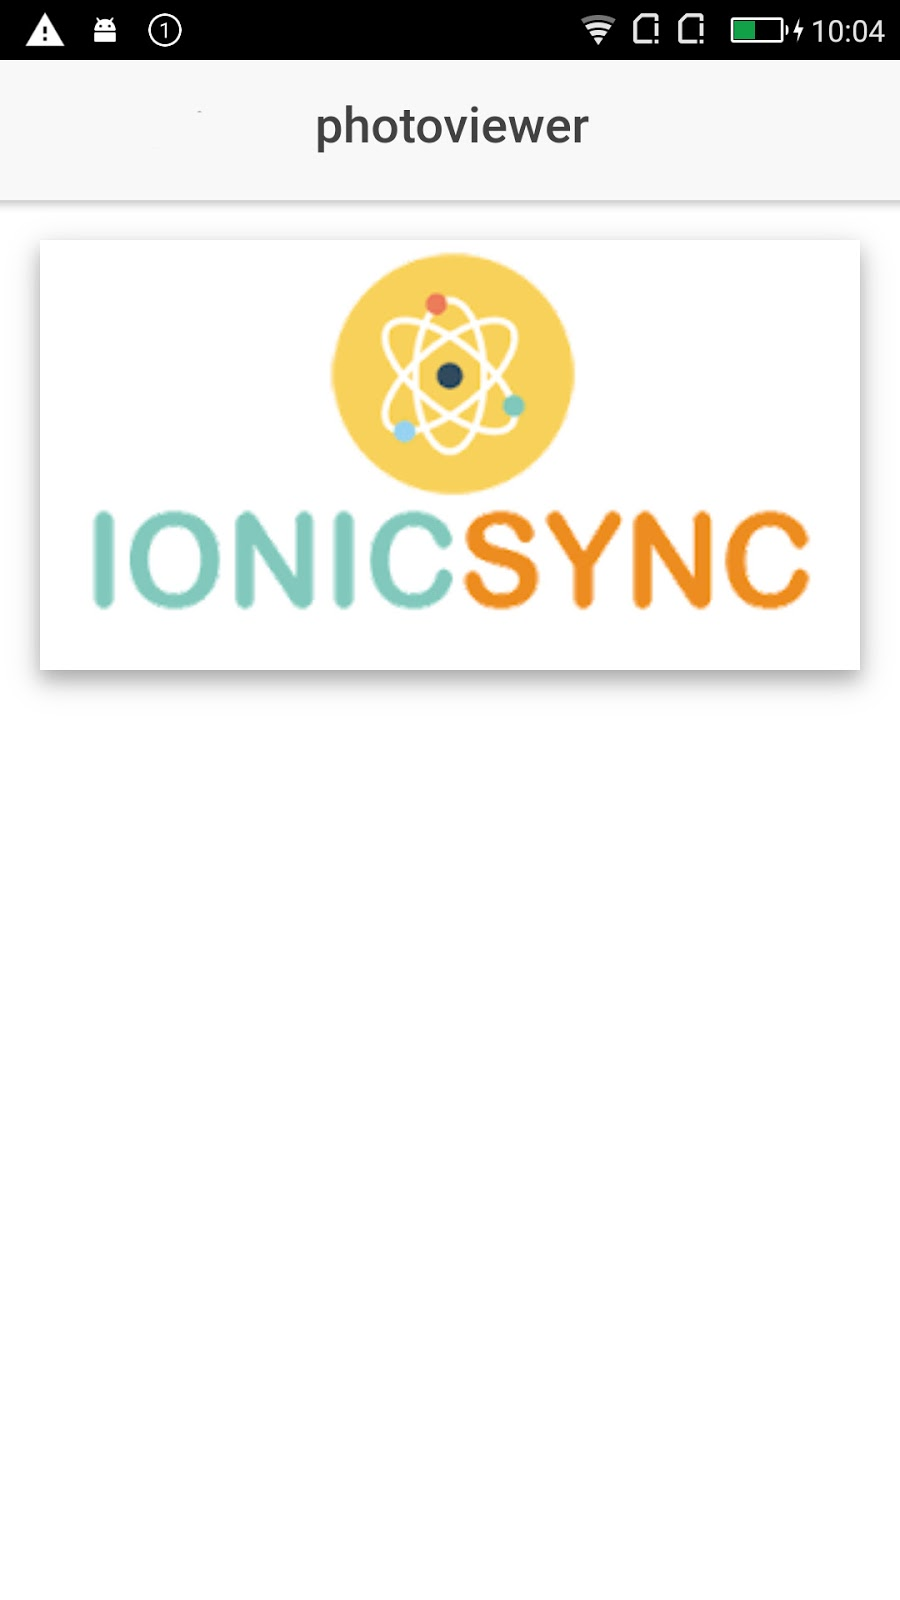 IONICSYNC | All about implementing stuff in ionic framework